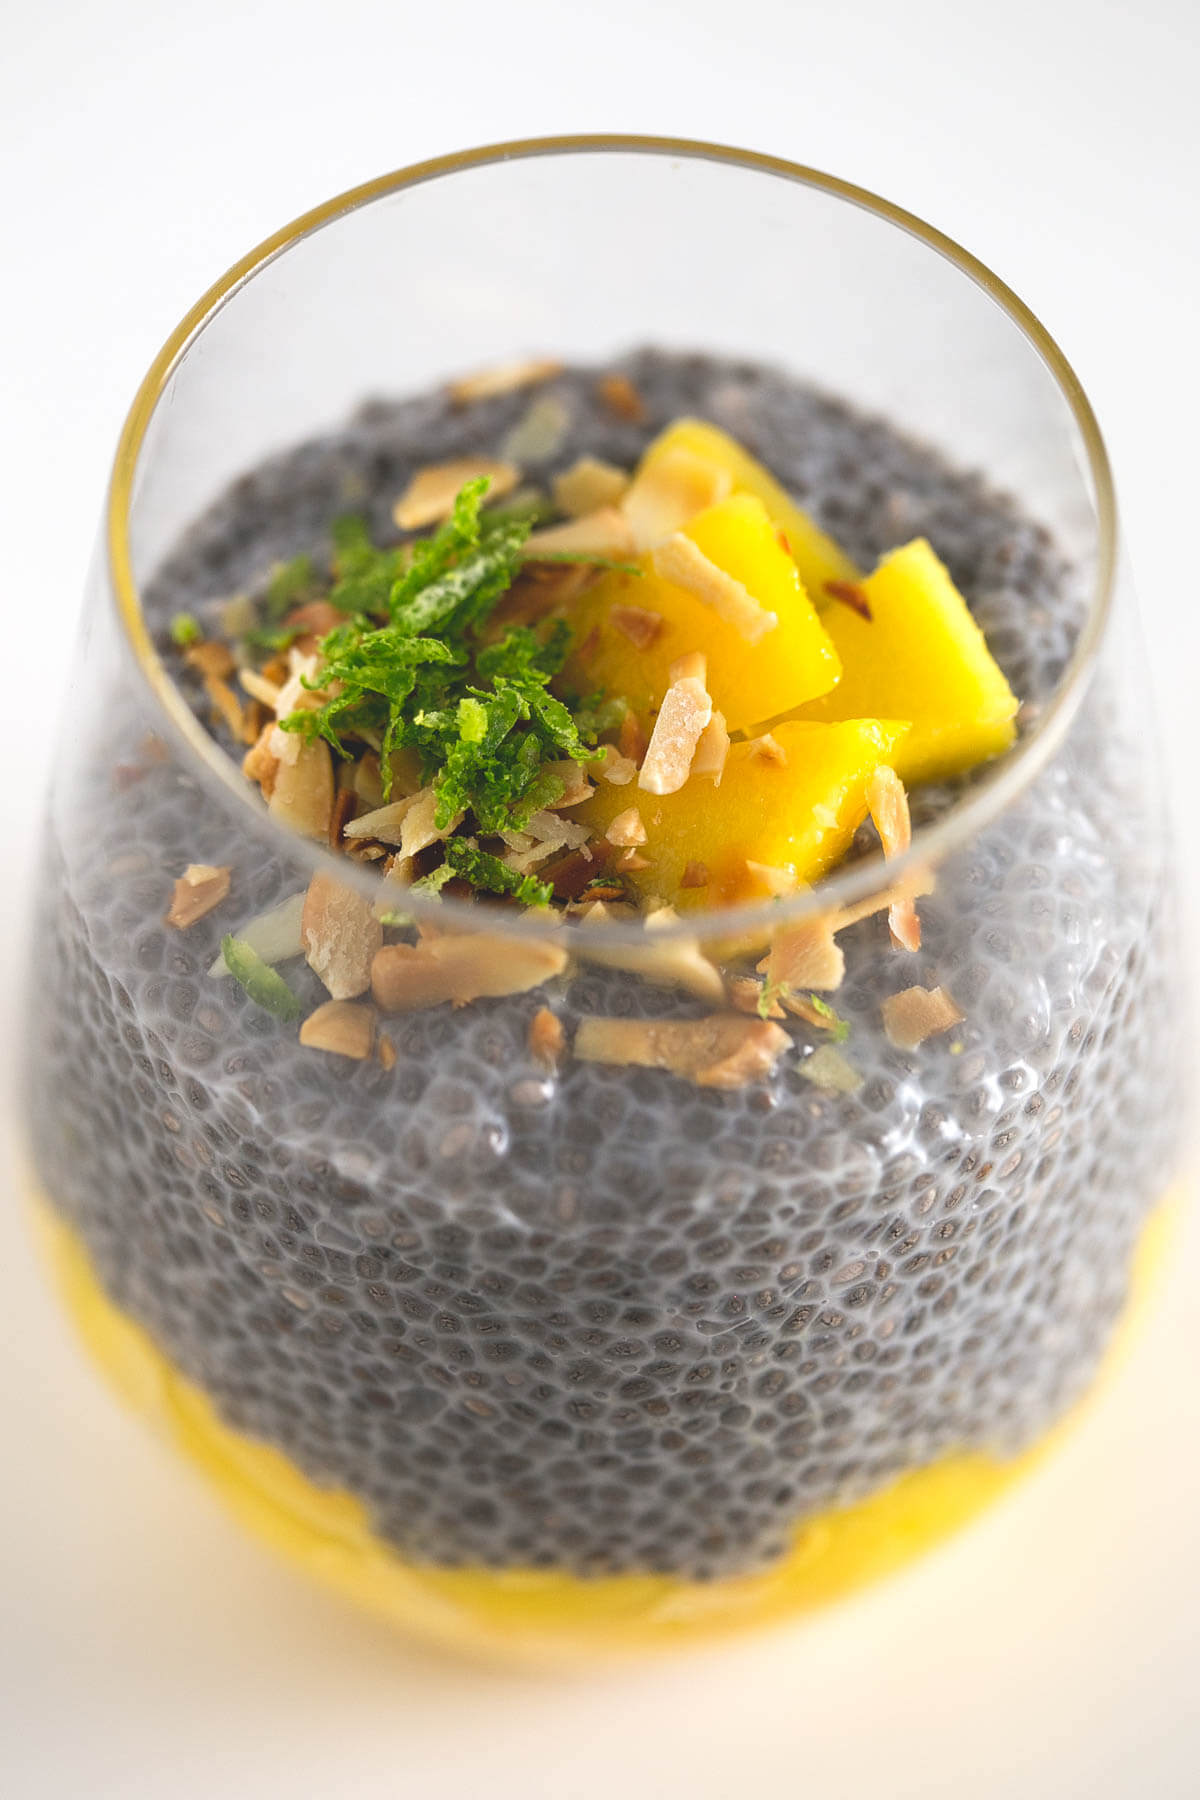 Chia and mango pudding: This chia and mango pudding is ideal for eating out for those who do not have much time. It's the perfect breakfast/snack/dessert!